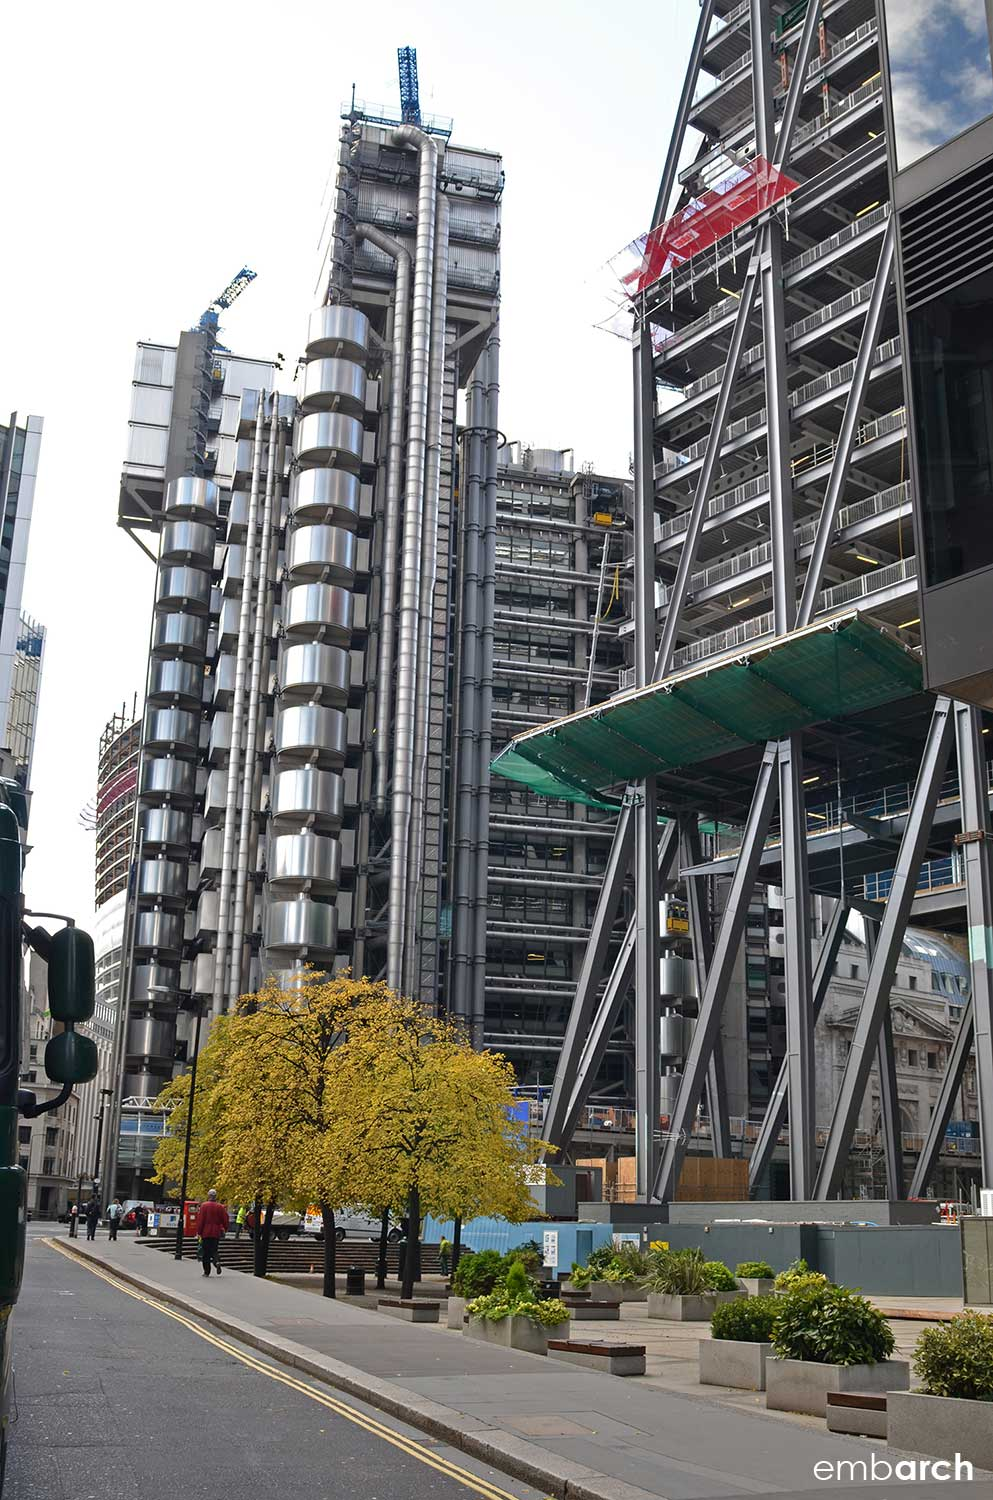 Lloyds of London - exterior